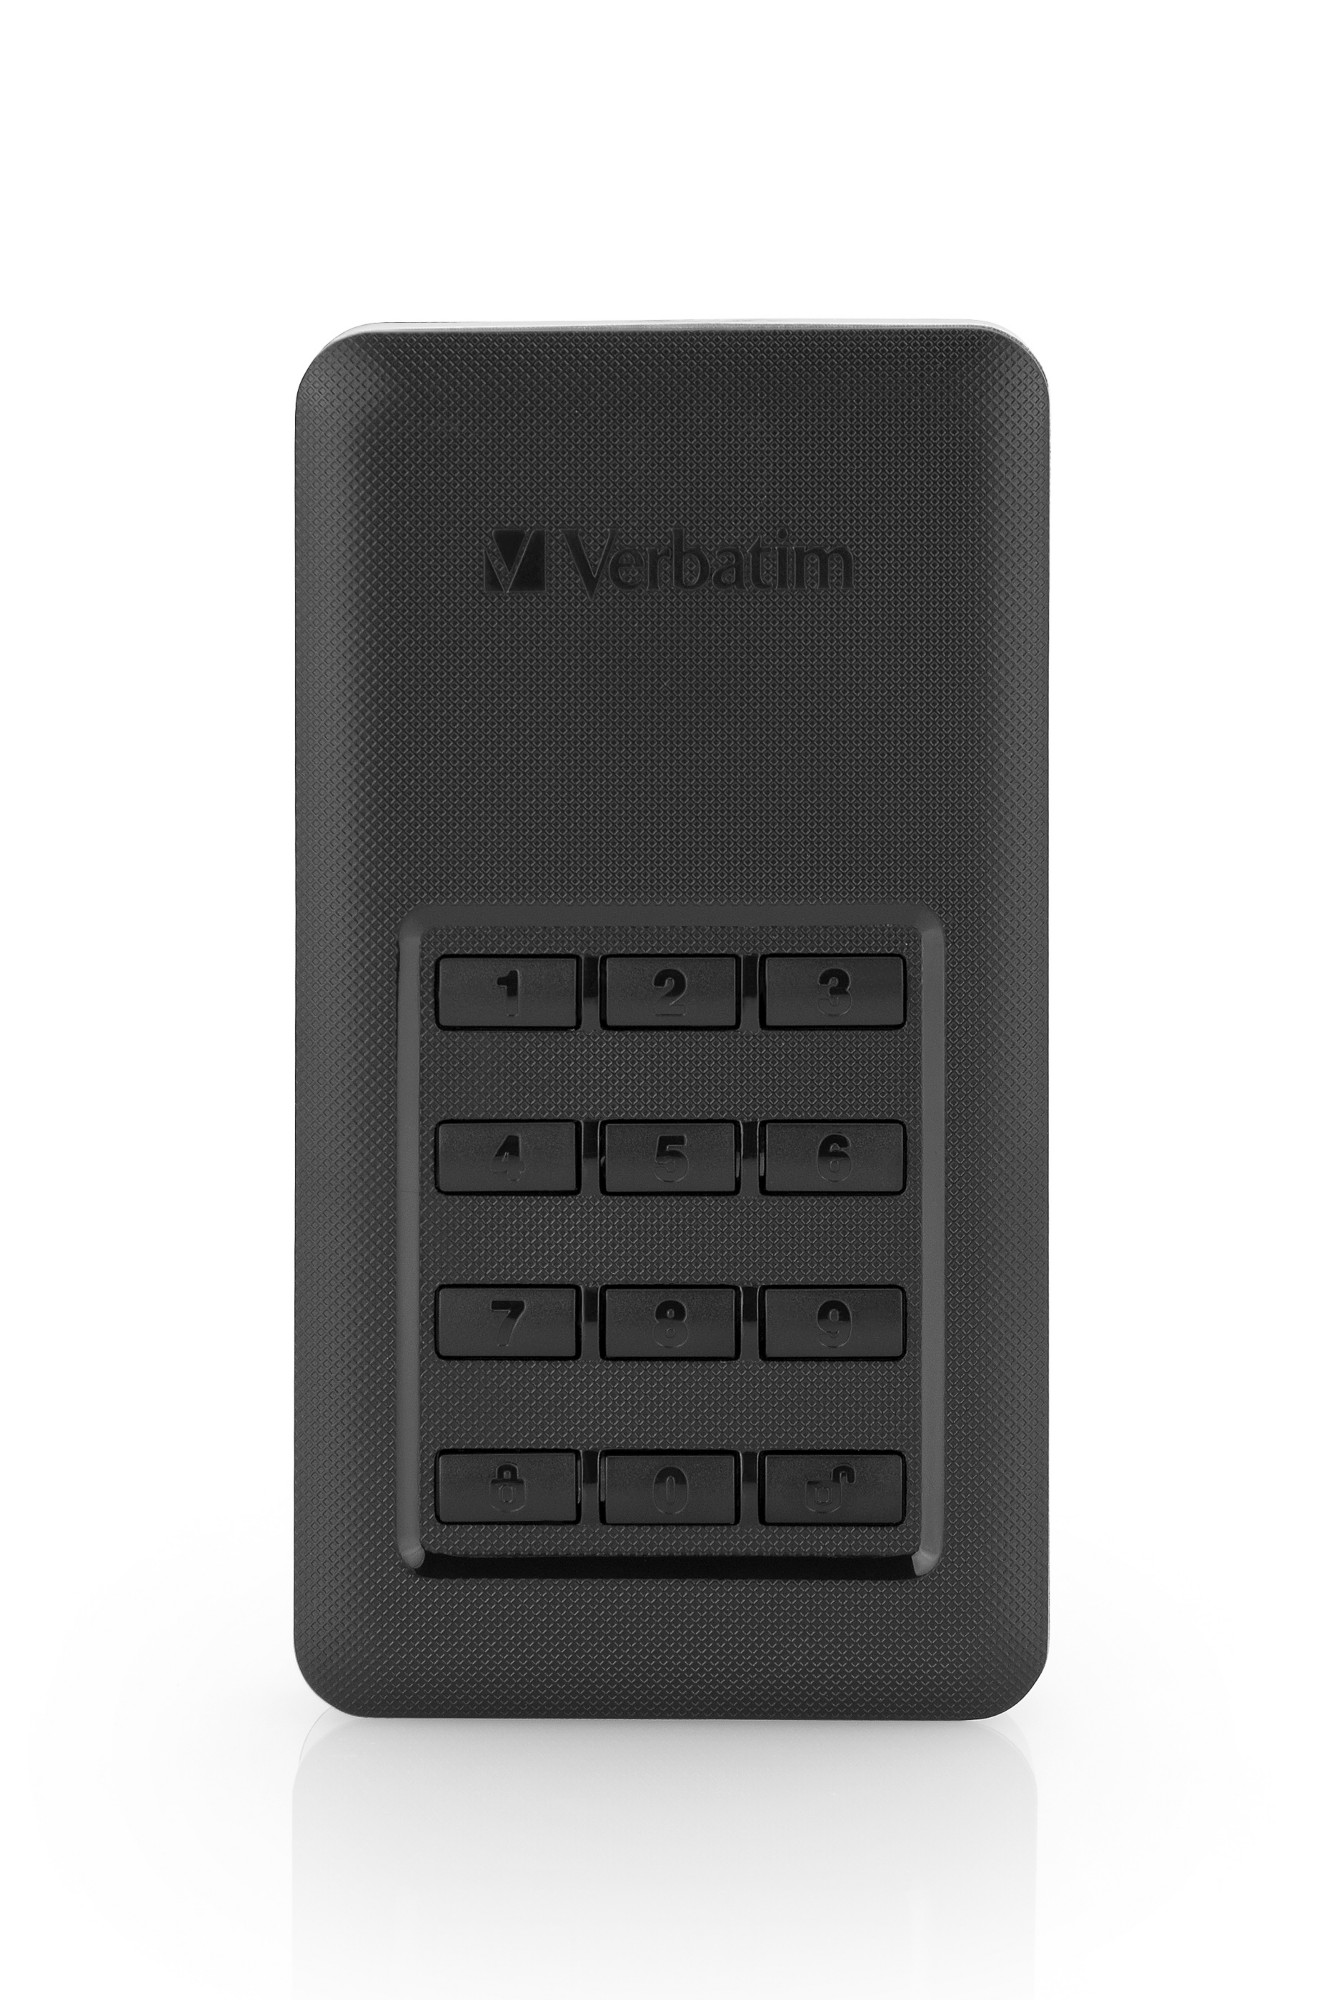 VERBATIM 53402 STORE 'N' GO SECURE PORTABLE SSD WITH KEYPAD ACCESS, USB 3.1, 256GB